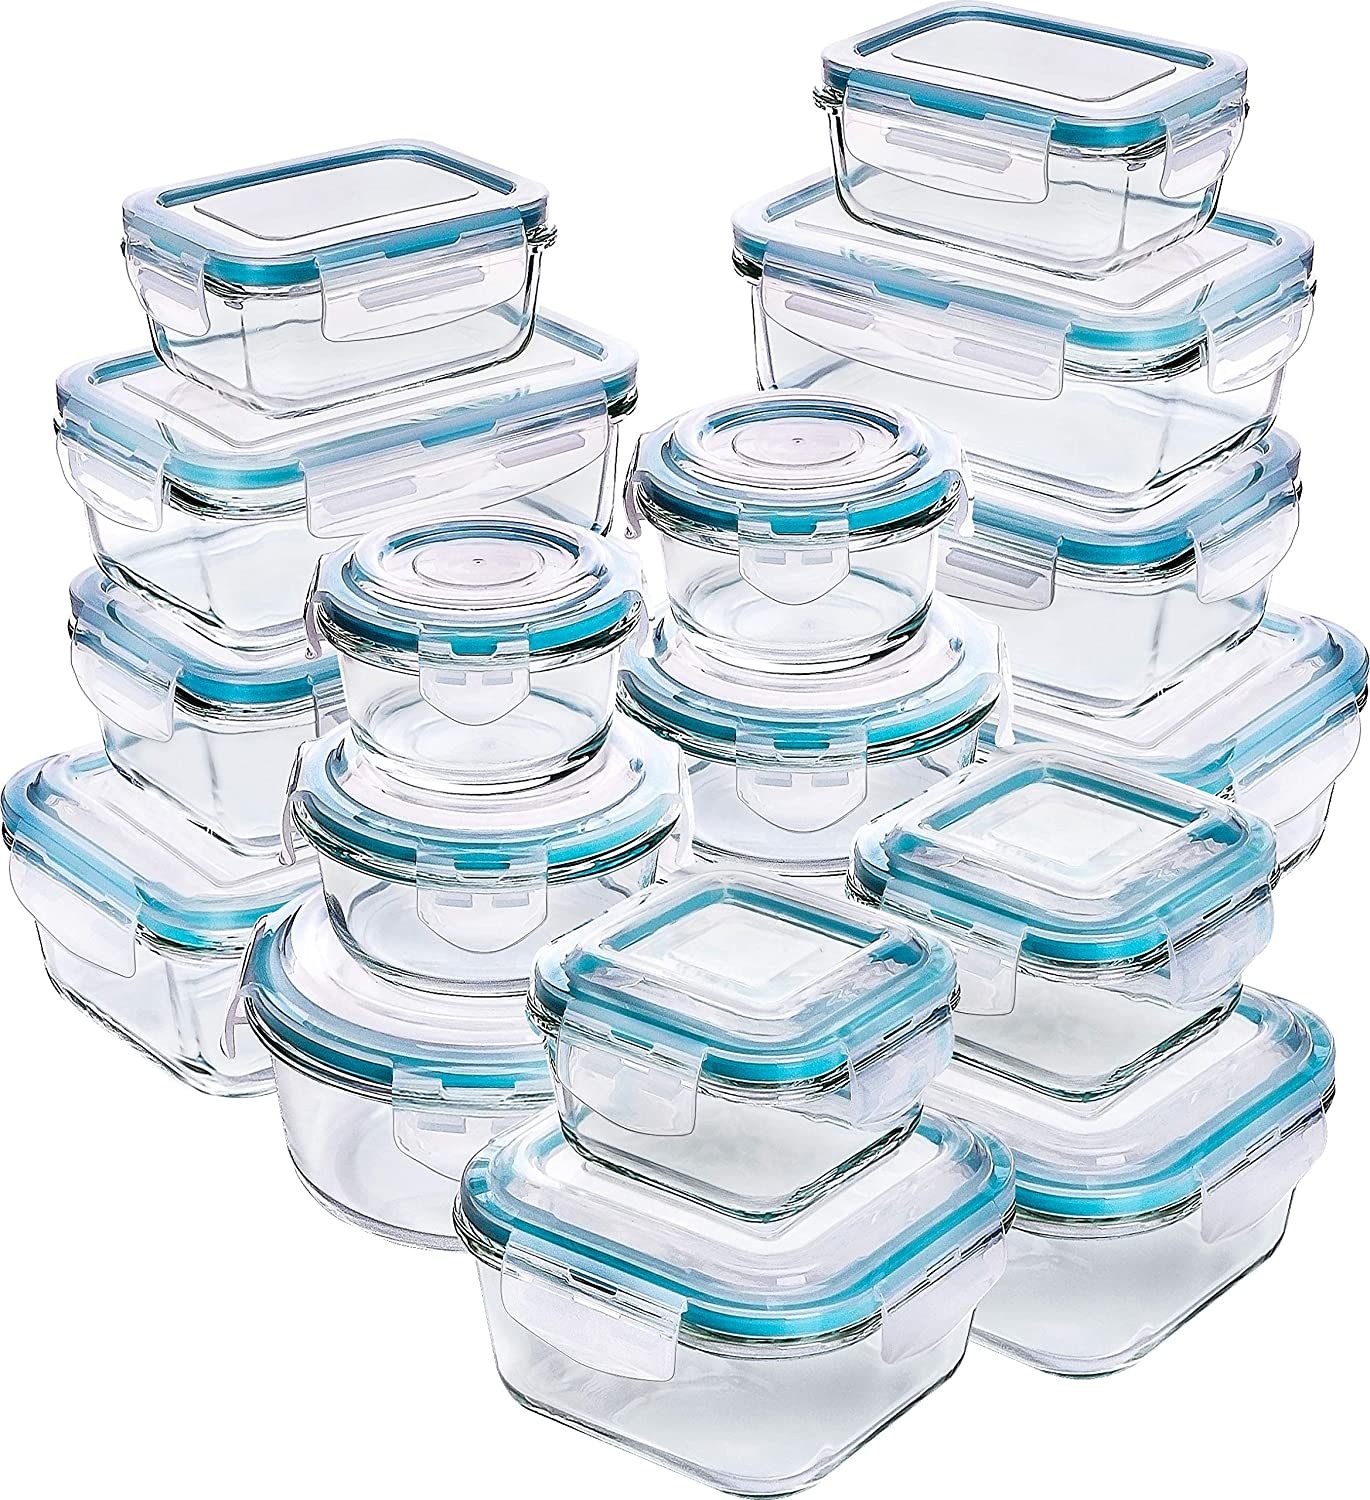 Utopia Kitchen Glass Food Storage Container Set - 36 Pieces (18 Containers, 18 Lids) - Transparent Lids - BPA Free (Blue, 36)